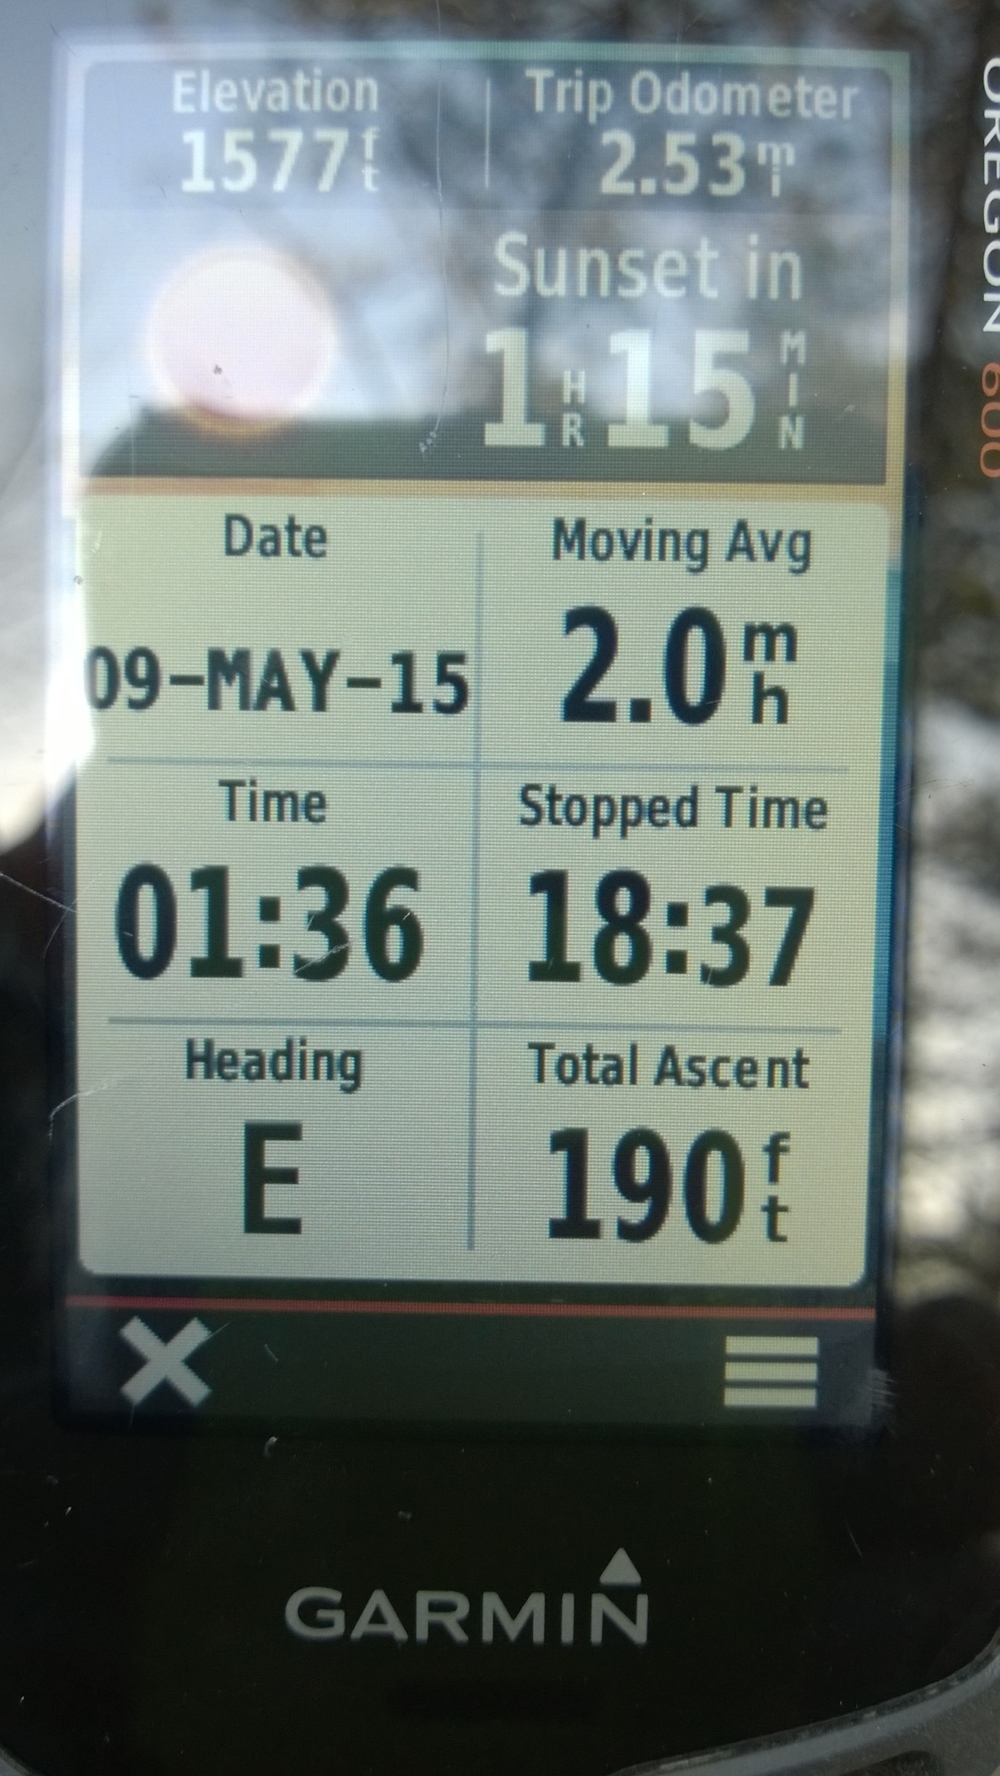 #5 and #6 where about a 2.5 mile round trip.